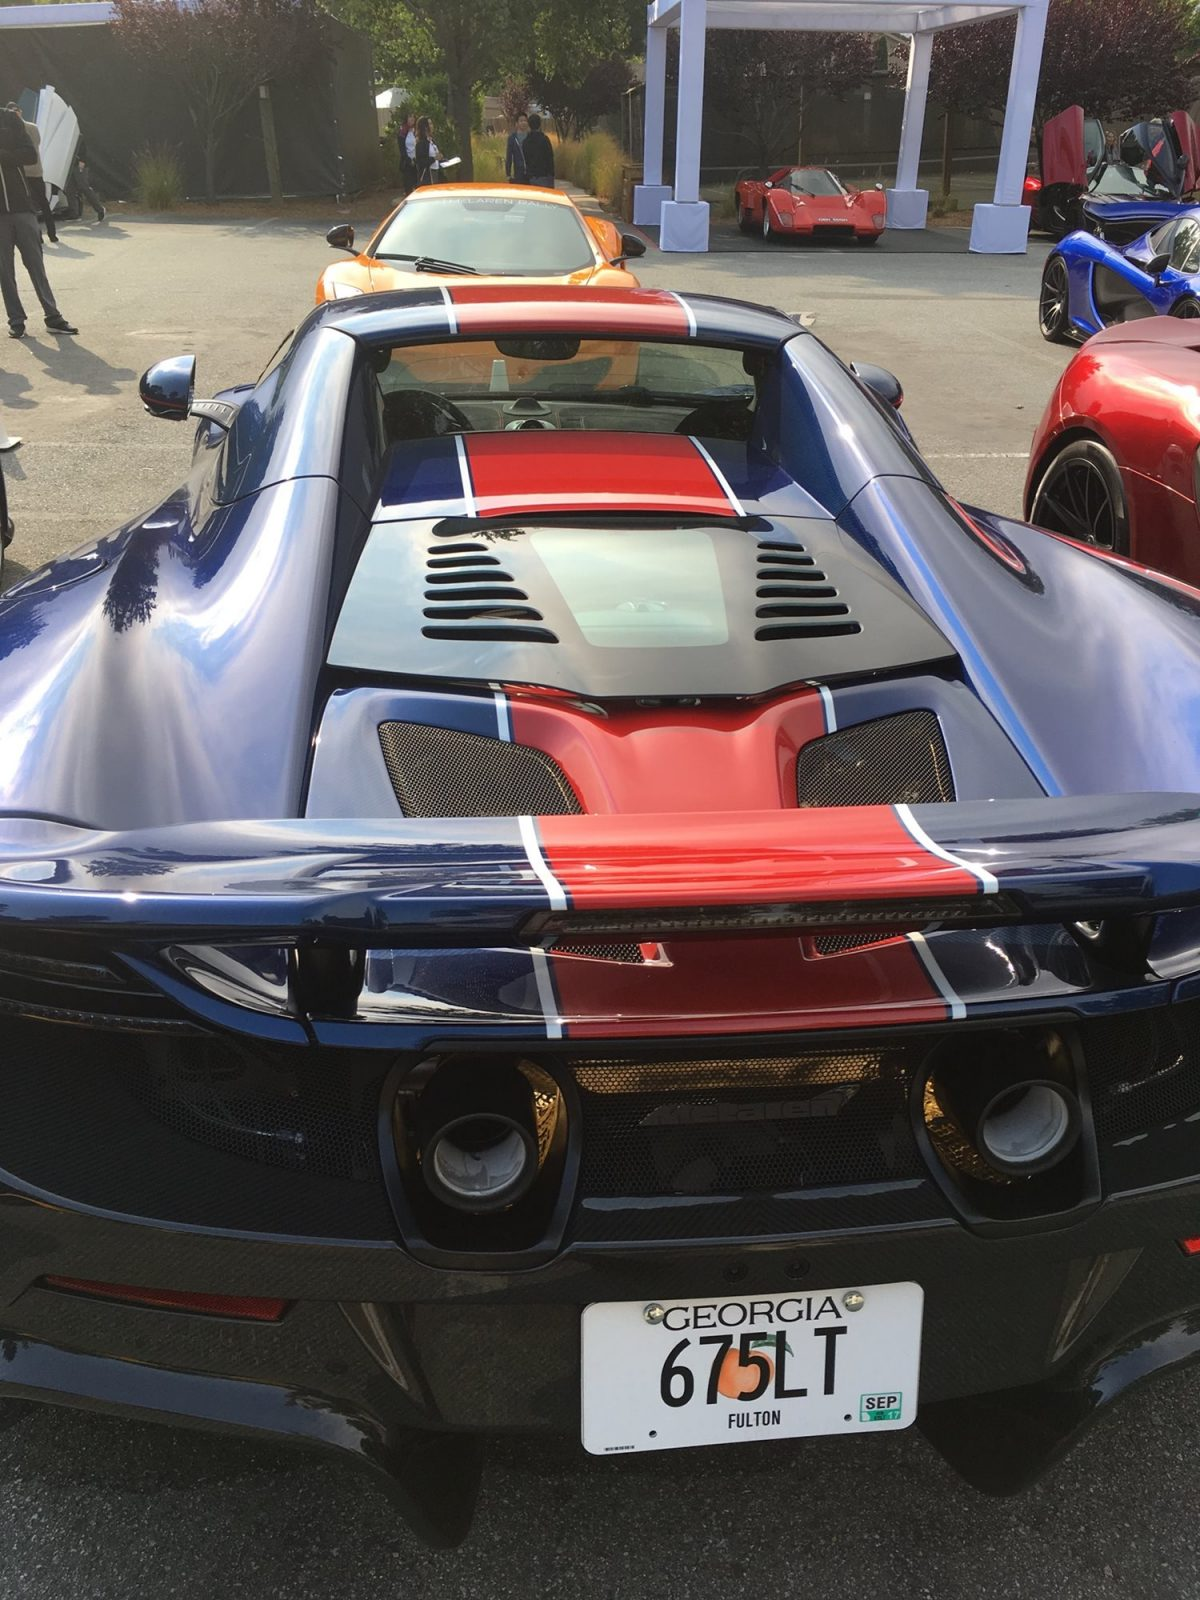 MCLAREN MADNESS - 2017 Pebble Beach VIP Villa 51